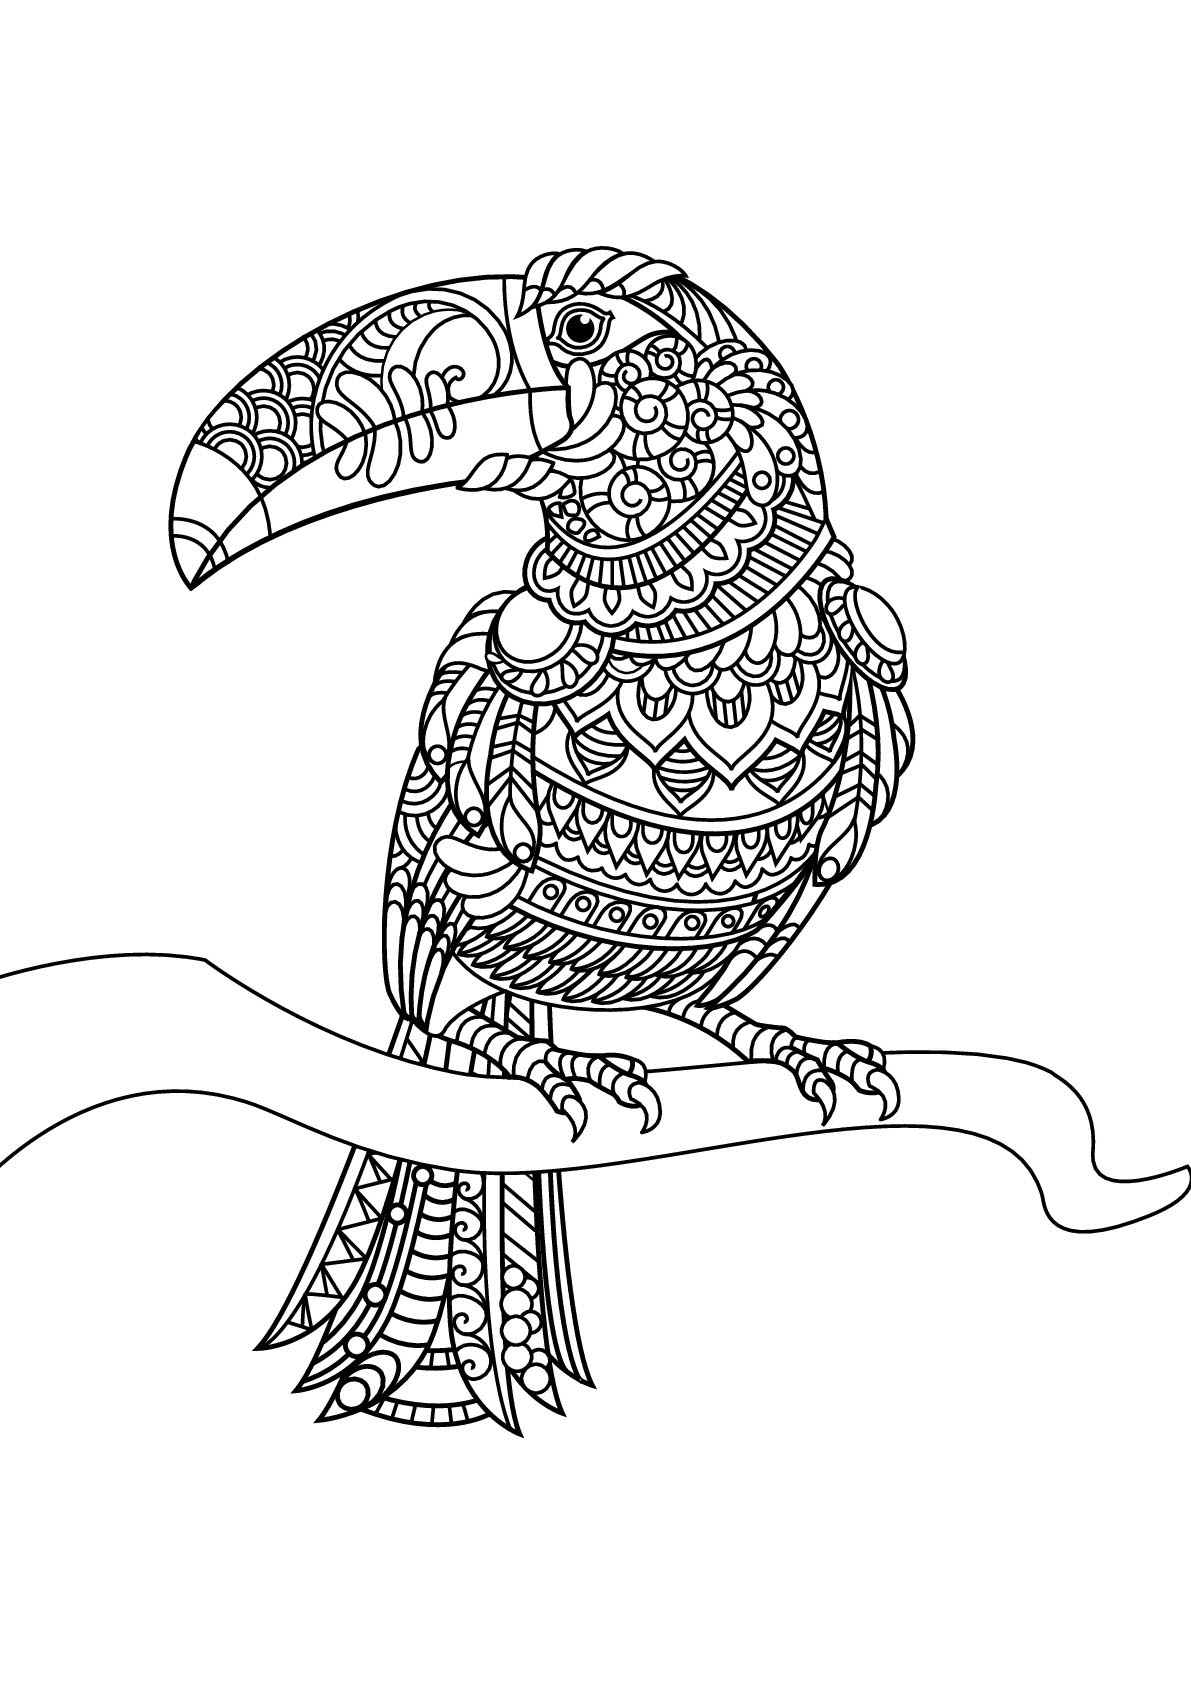 Birds free to color for children - Birds Kids Coloring Pages